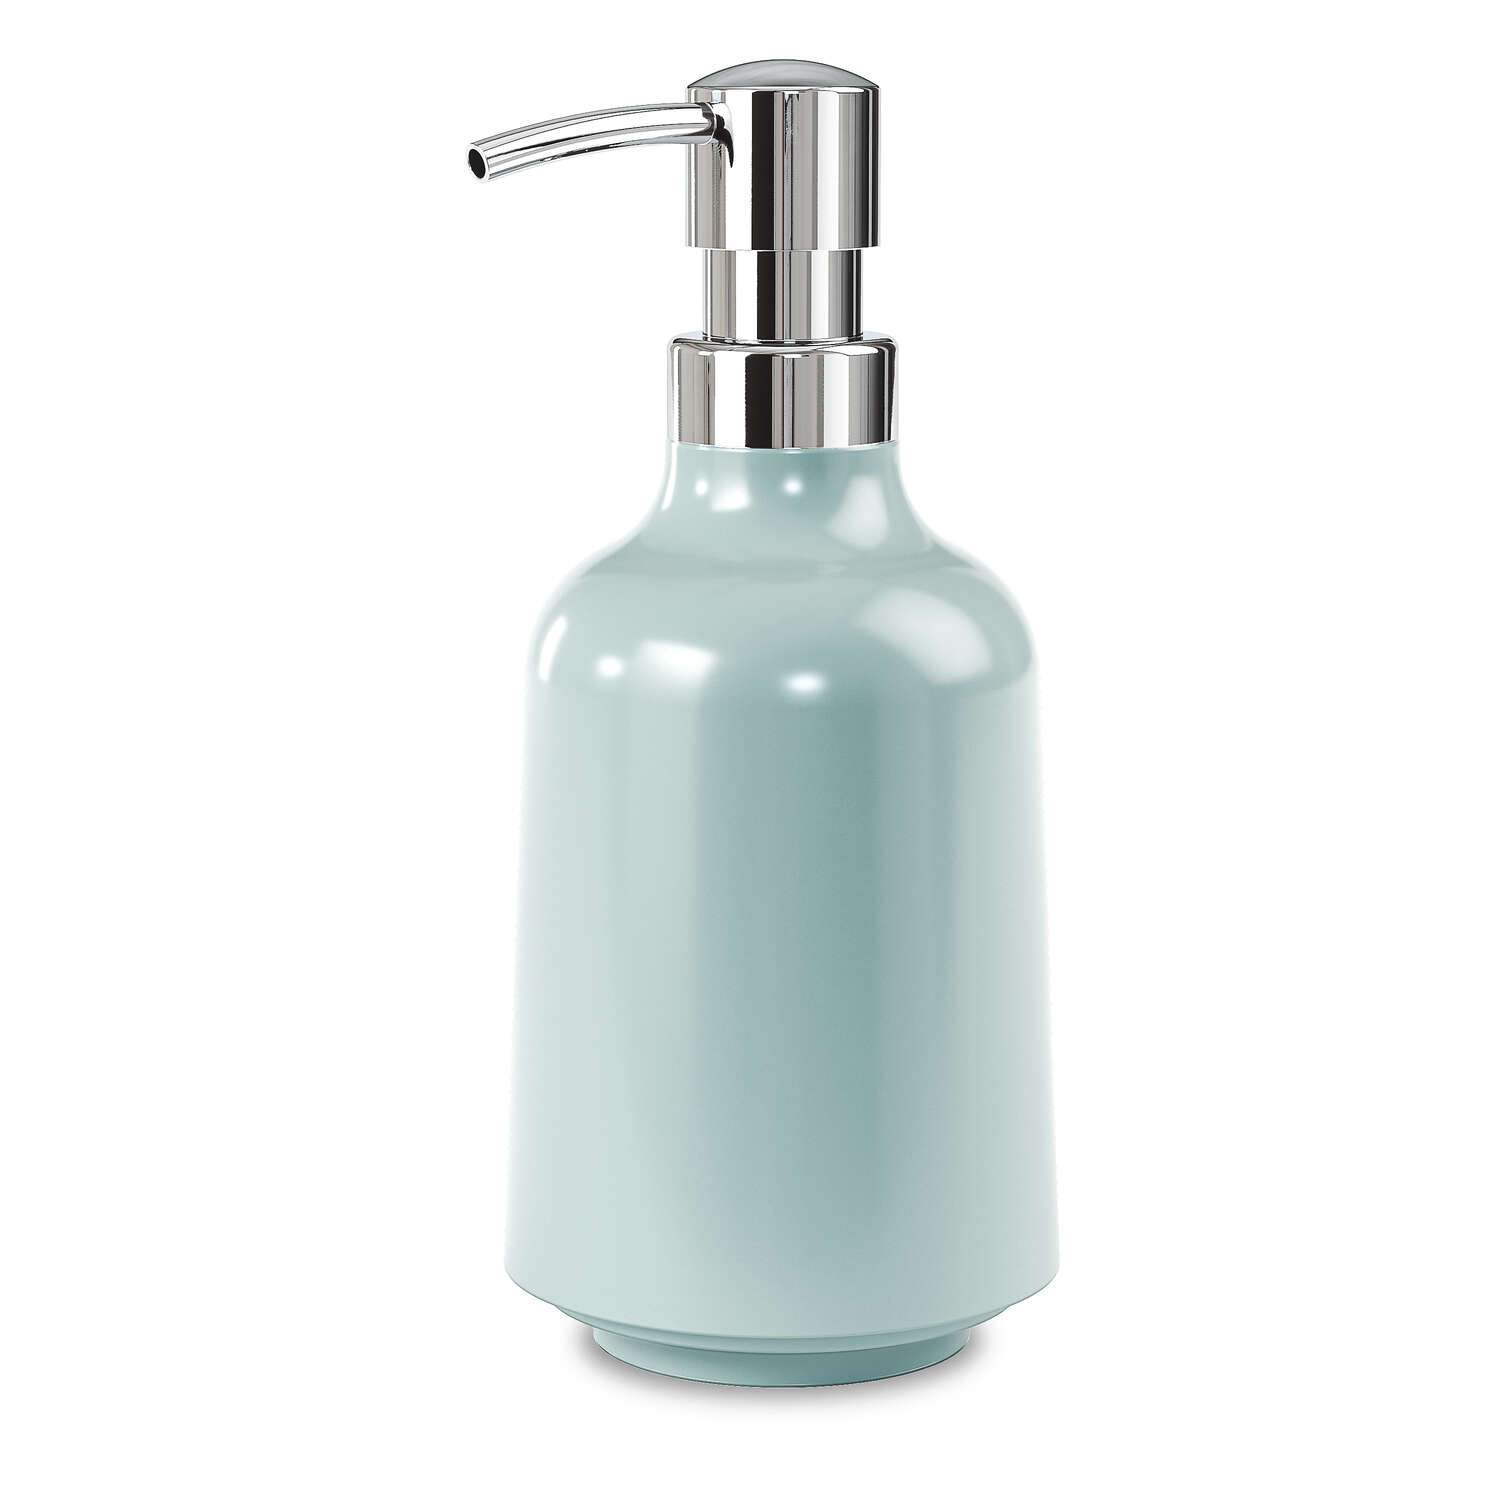 Umbra  13 oz. Counter Top  Liquid  Step Soap Pump